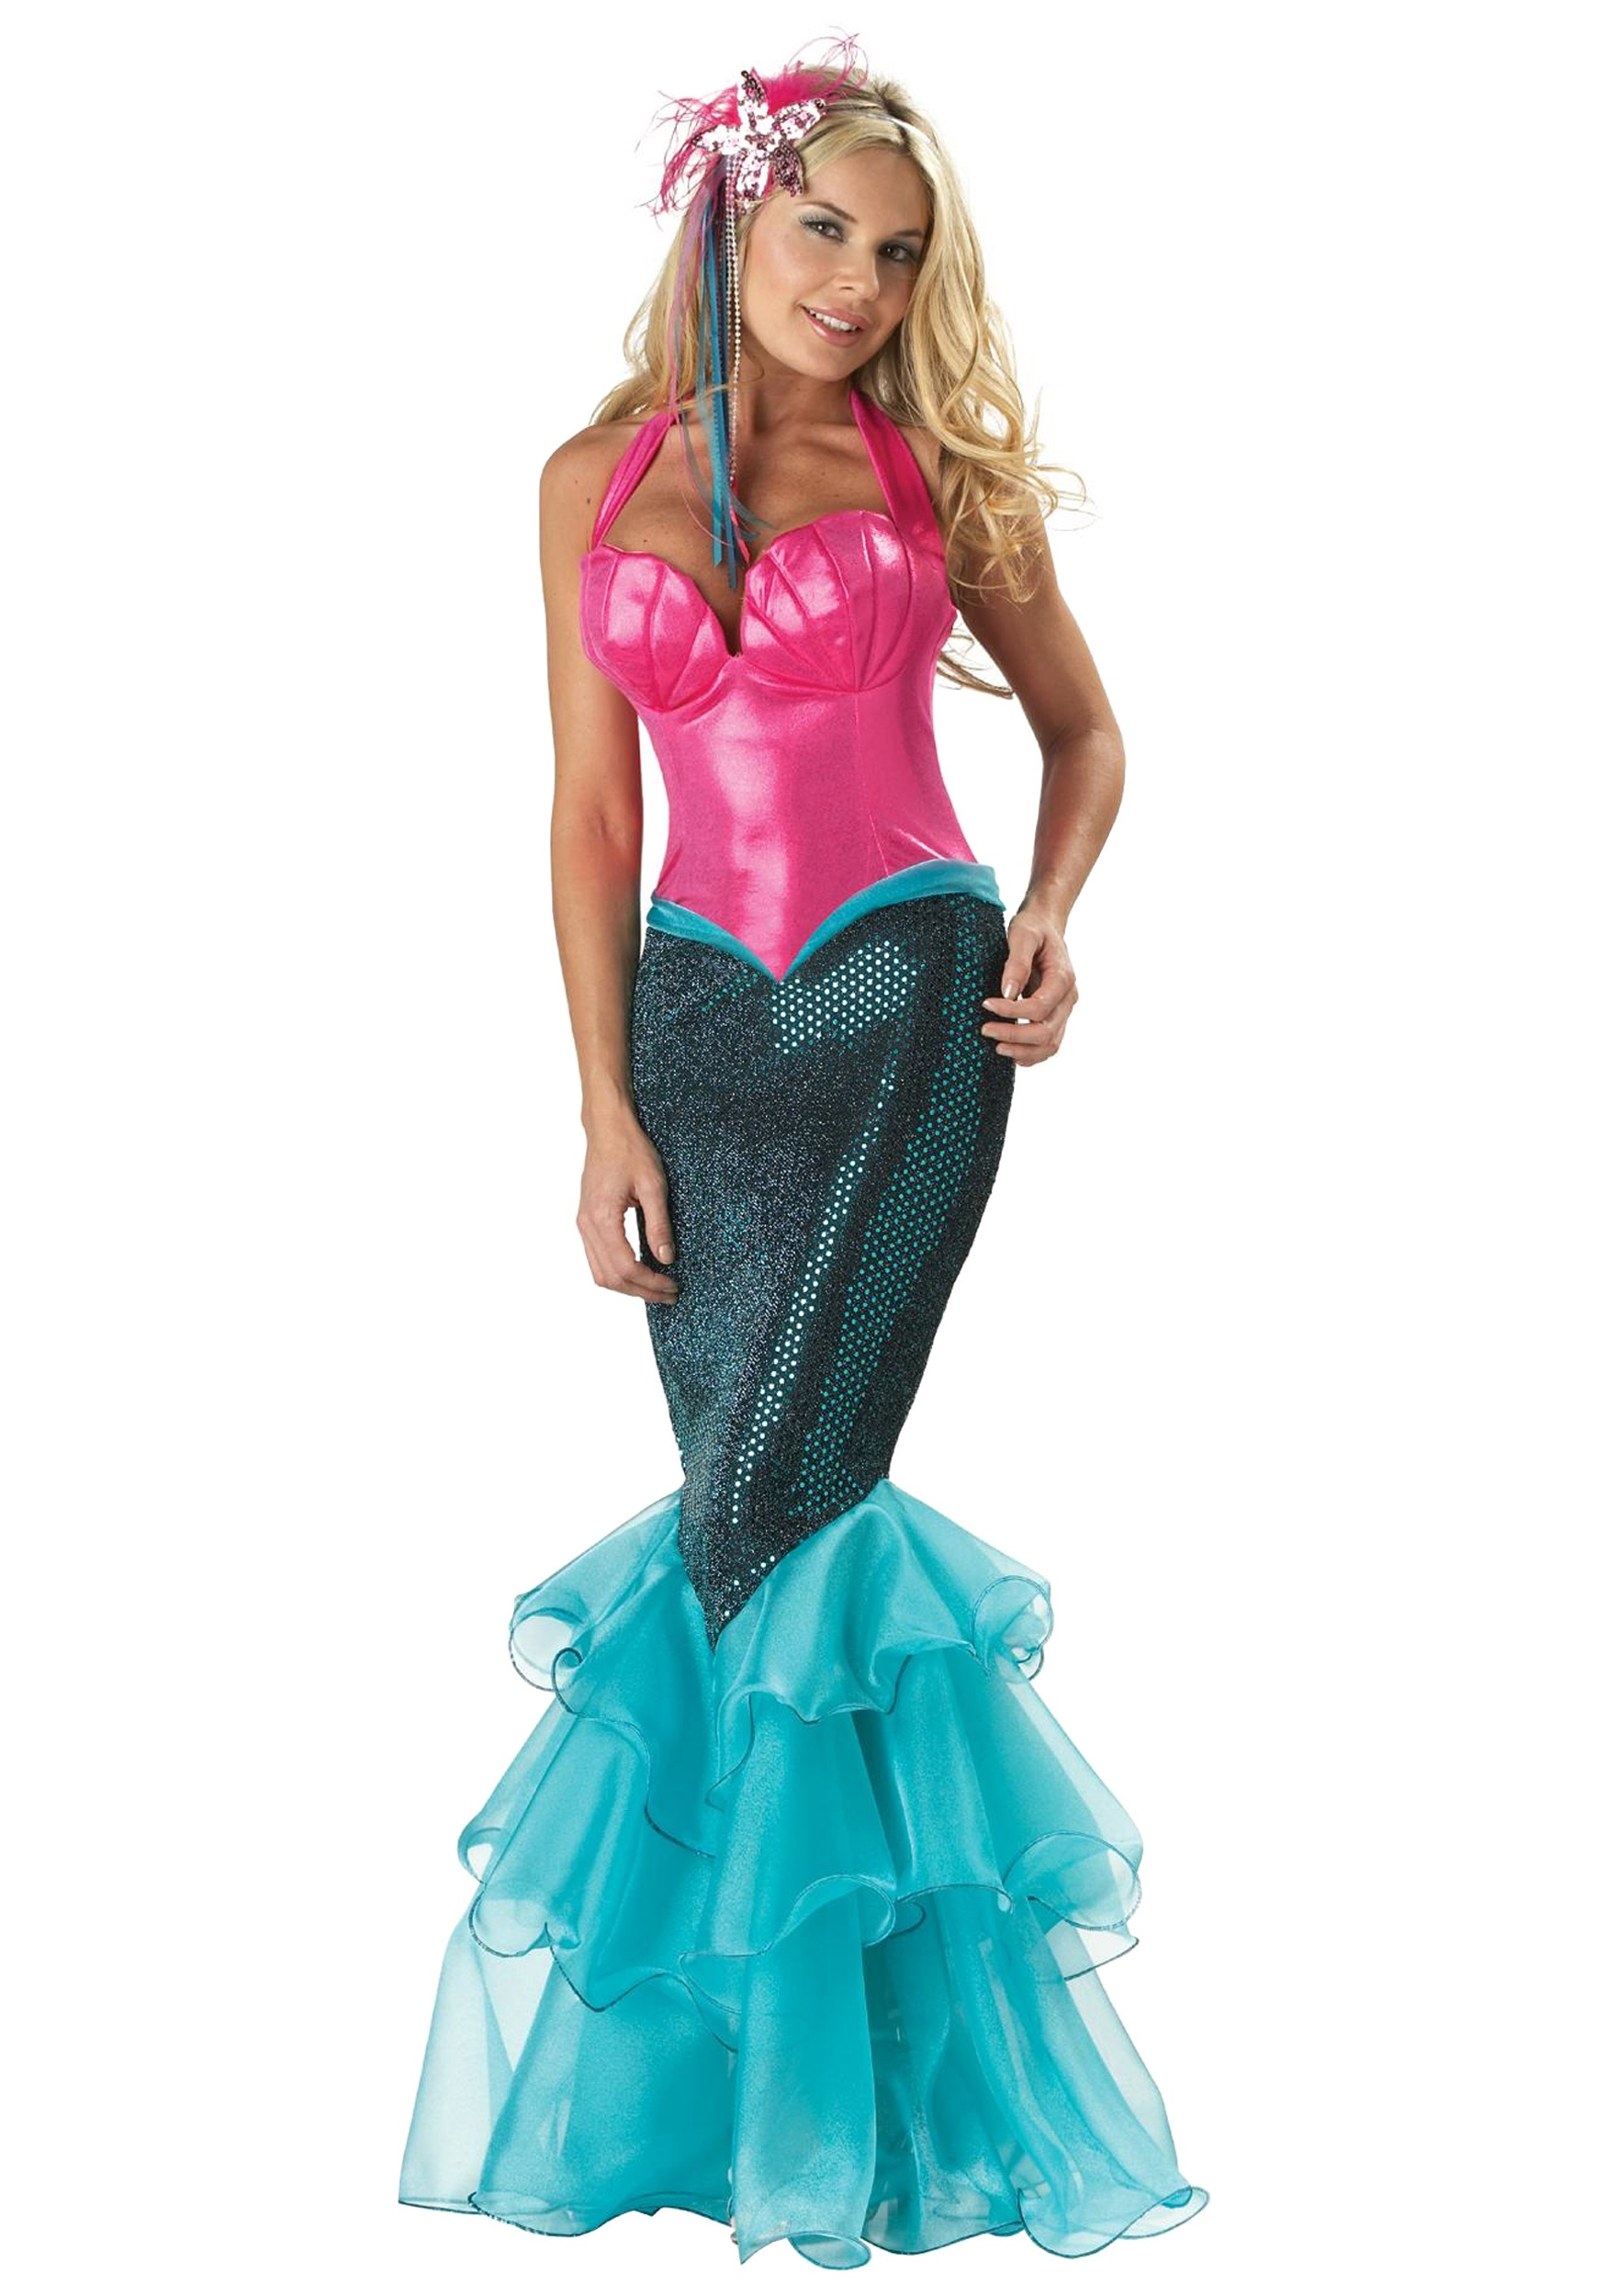 elite mermaid costume - Mermaid Halloween Costume For Kids